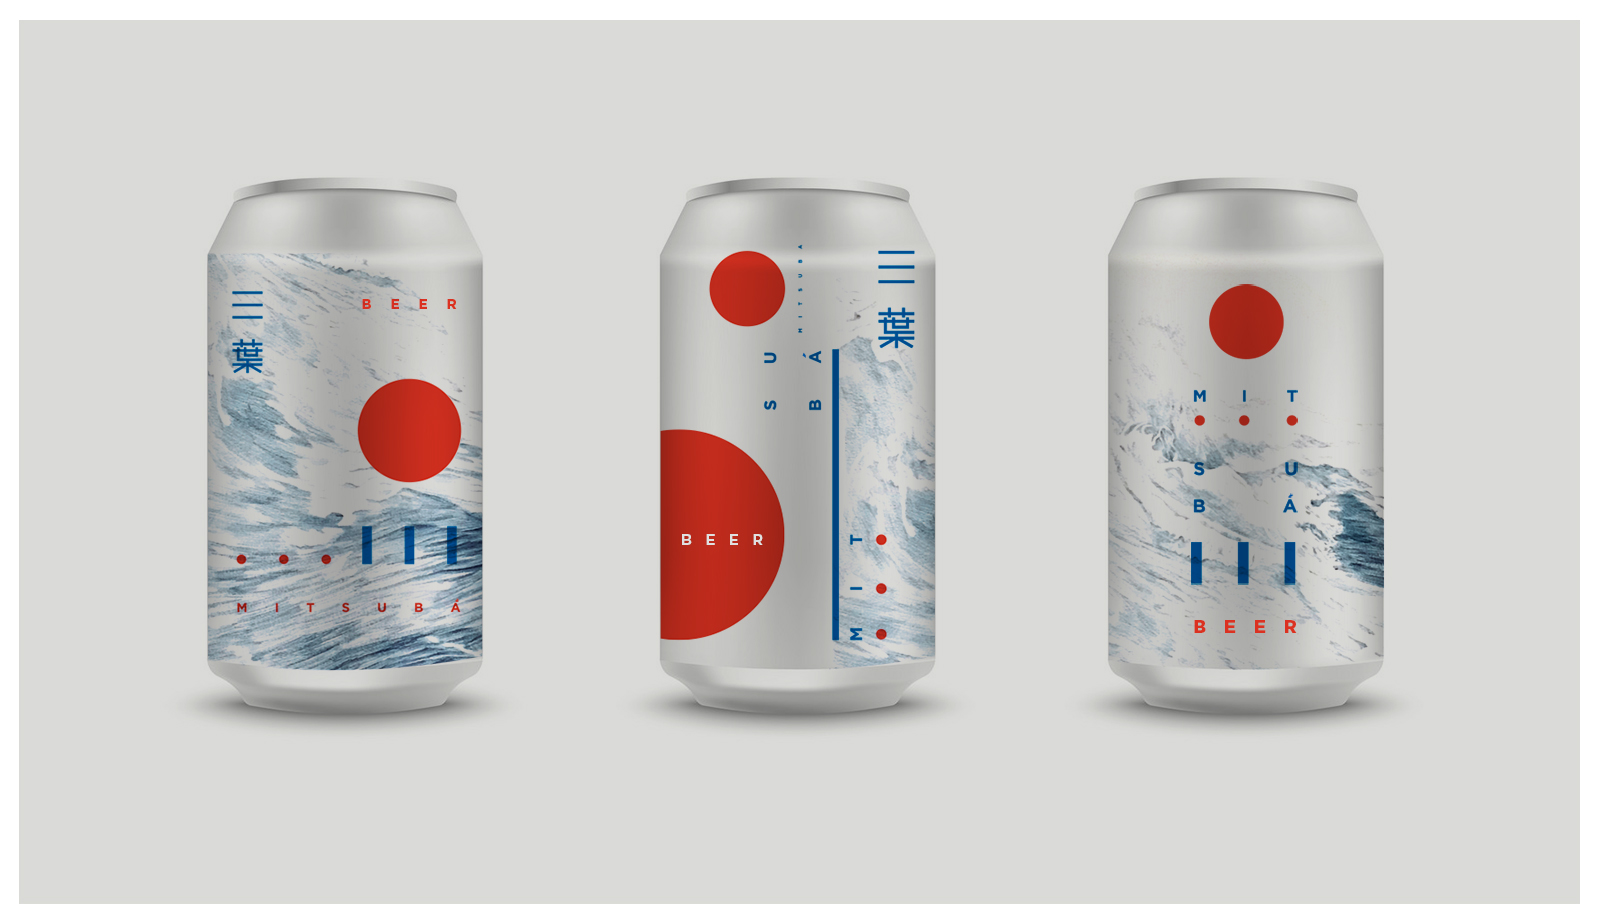 Blank aluminum can mockup for soda or beer in realistic 3d style.